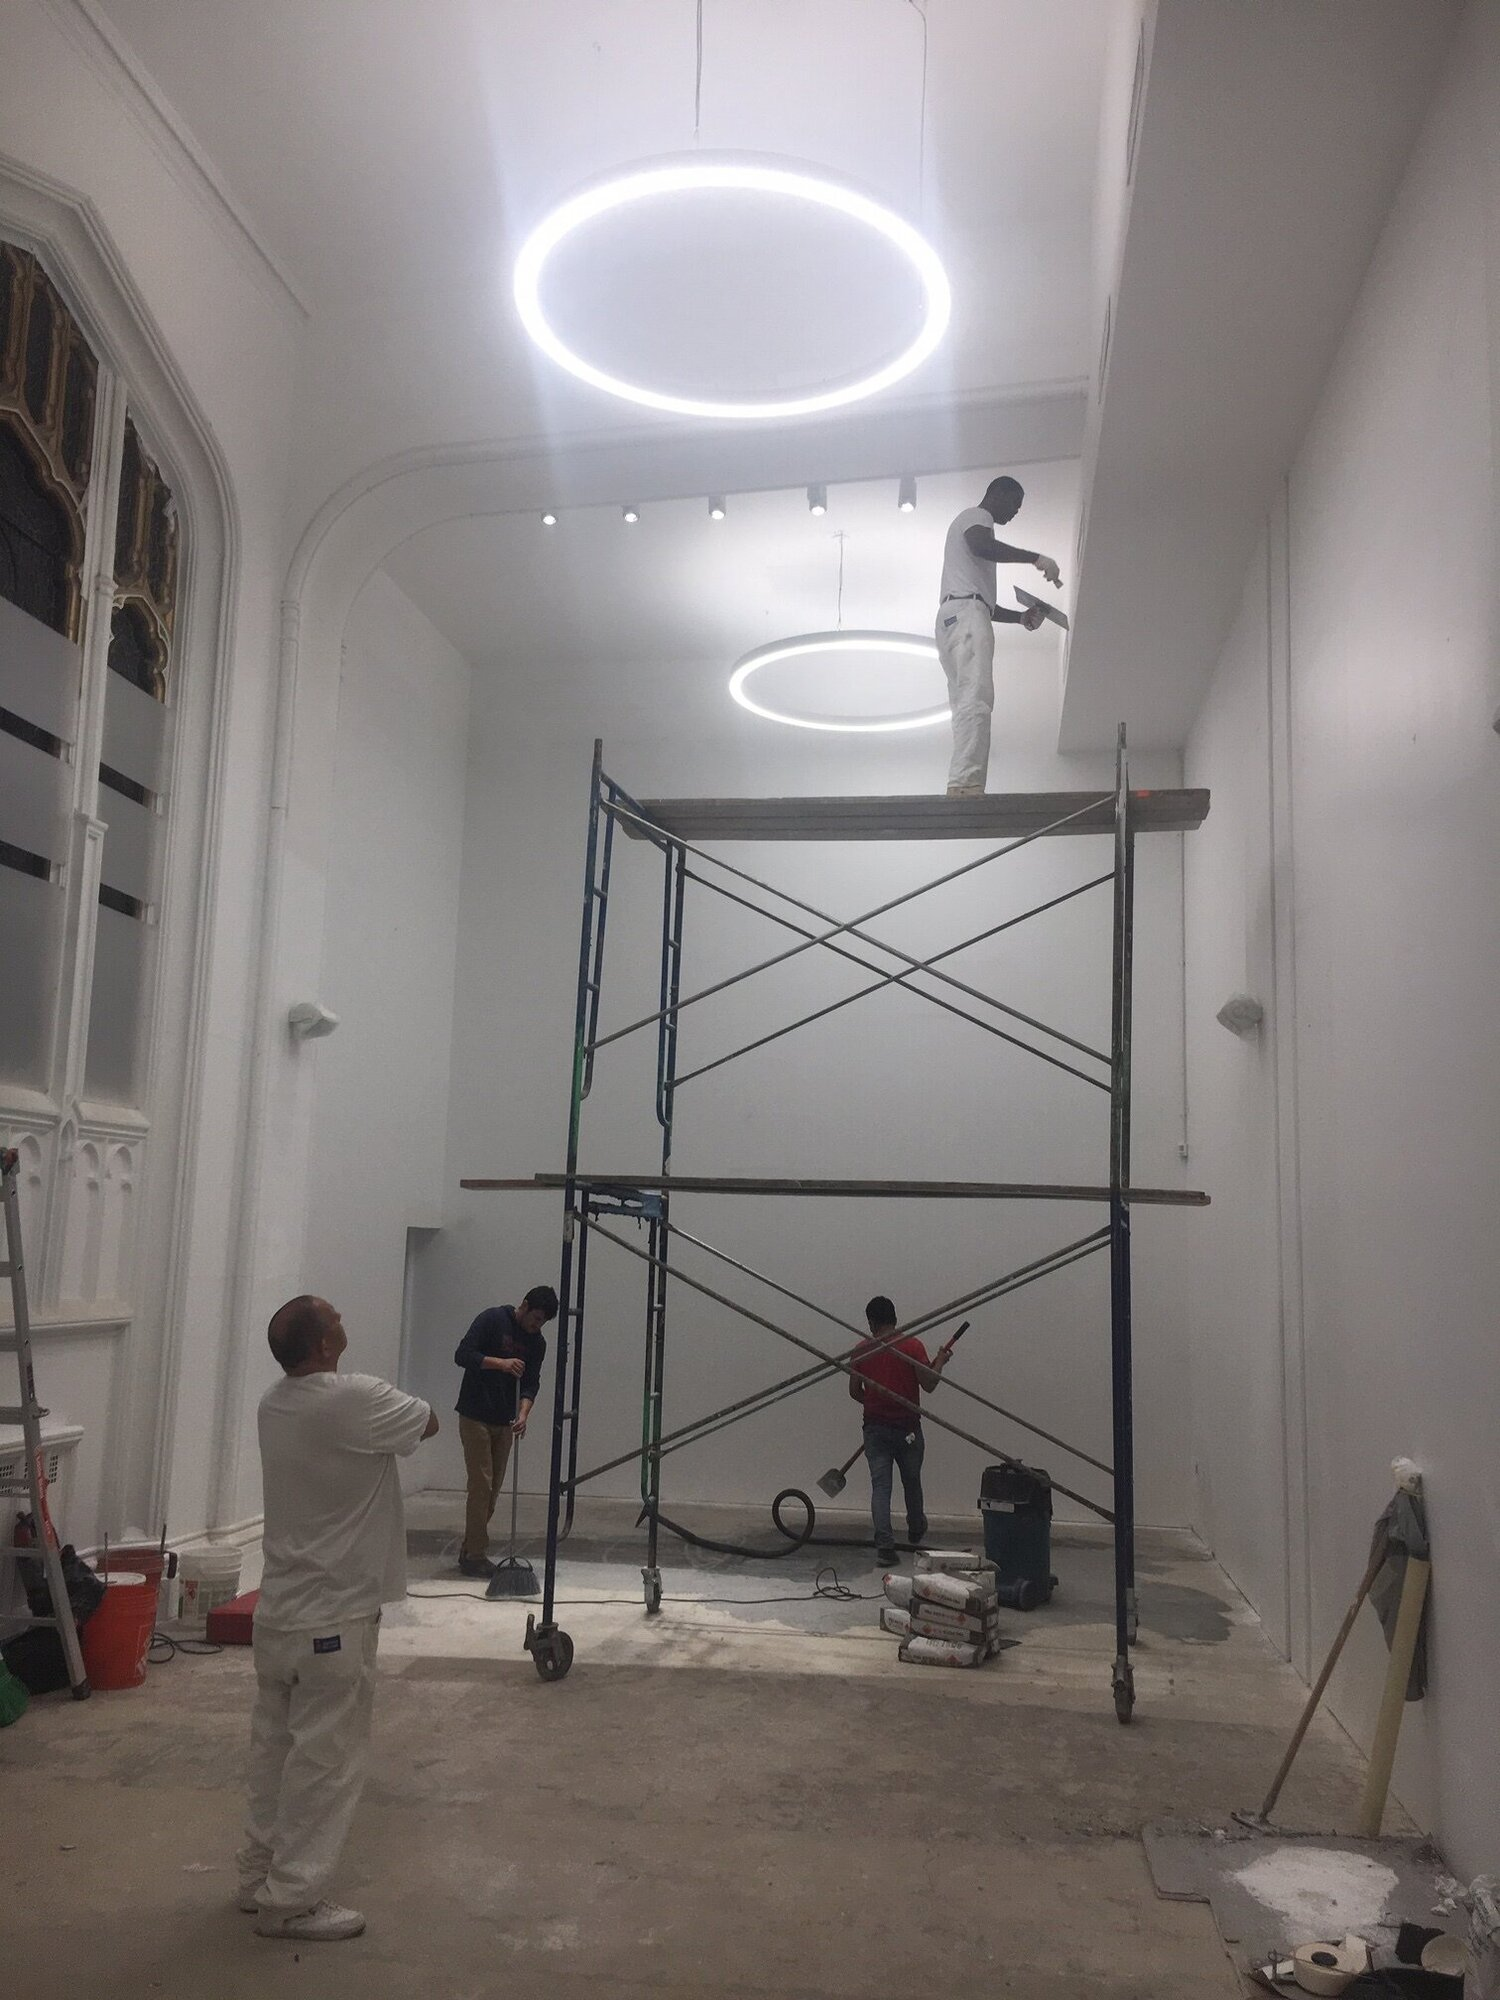 New Children's Academy in NYC - September 11, 2019Putting the finishing touches on our Children's Academy project.